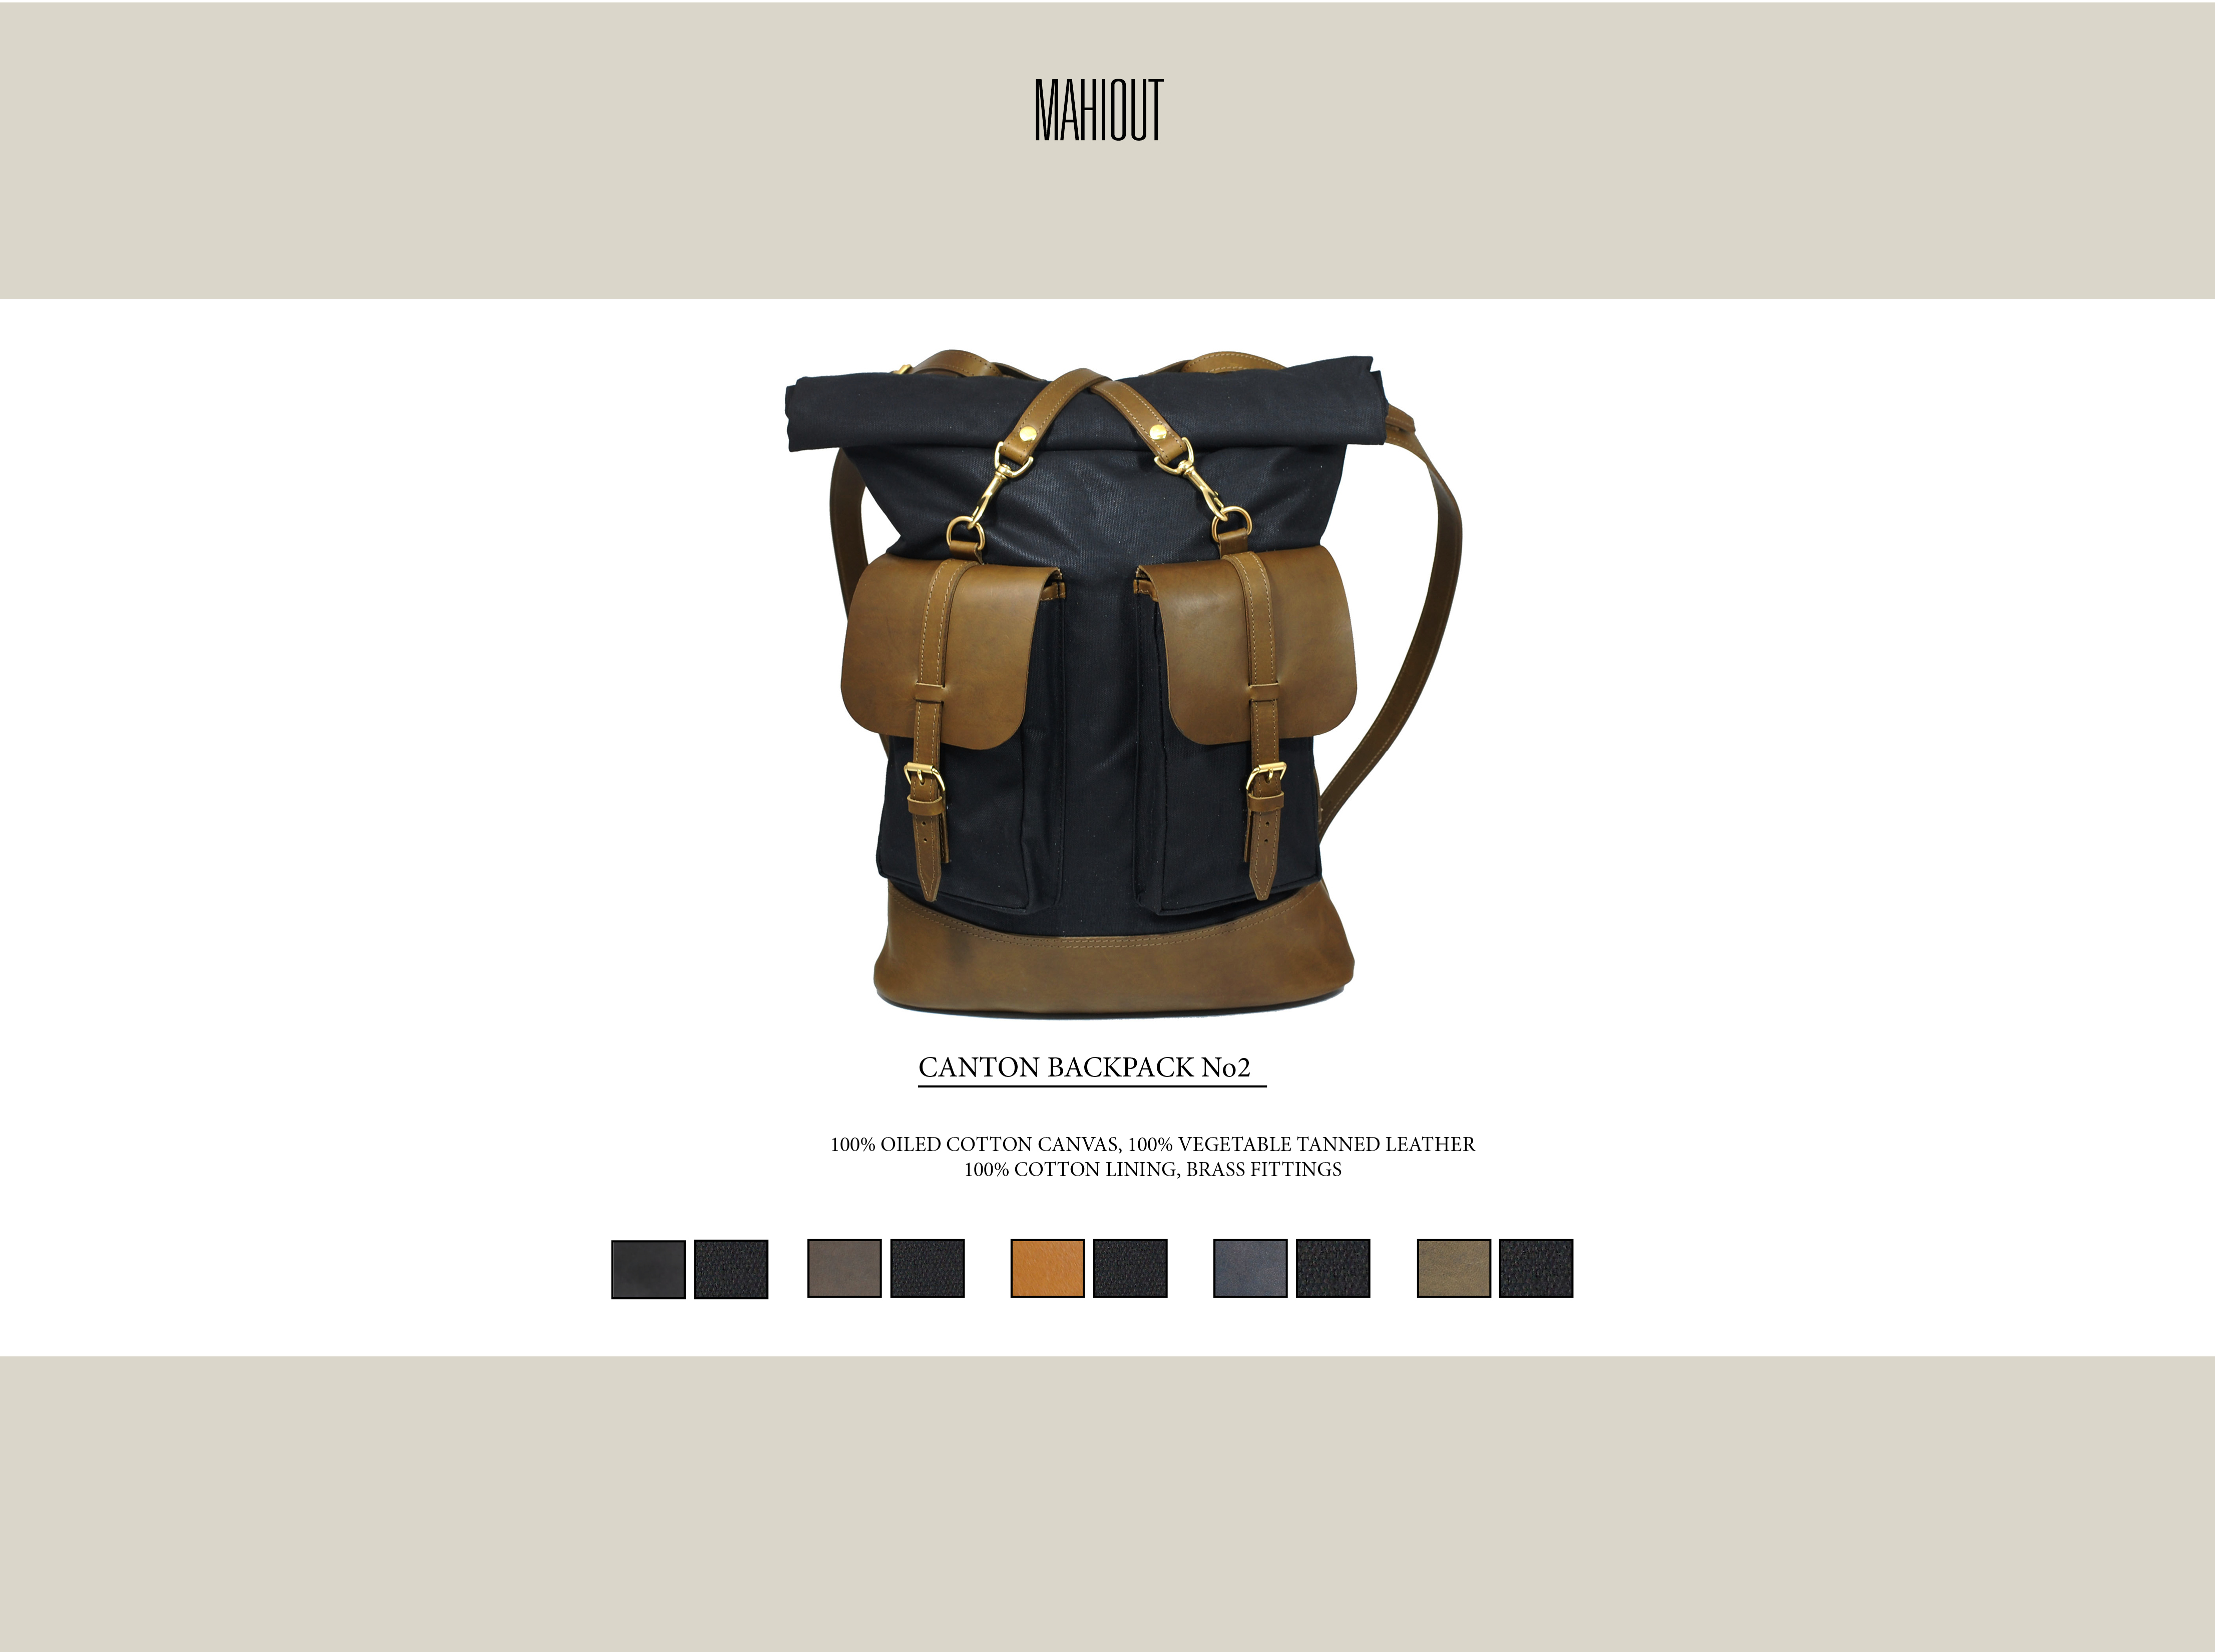 mahiout canton backpack number 2